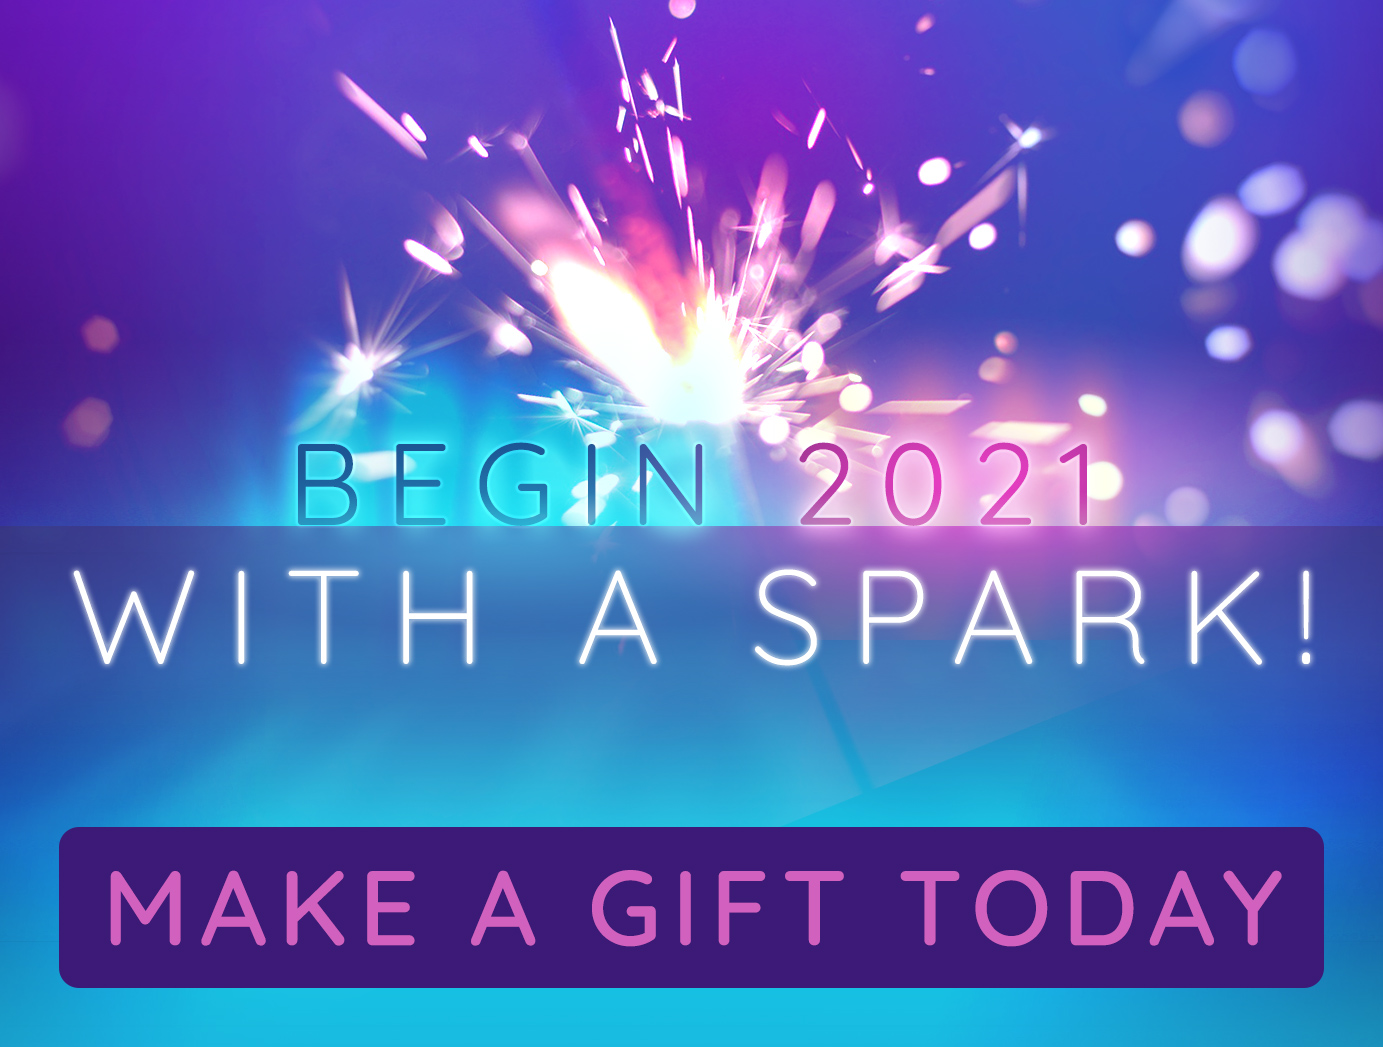 Begin 2021 With a Spark!